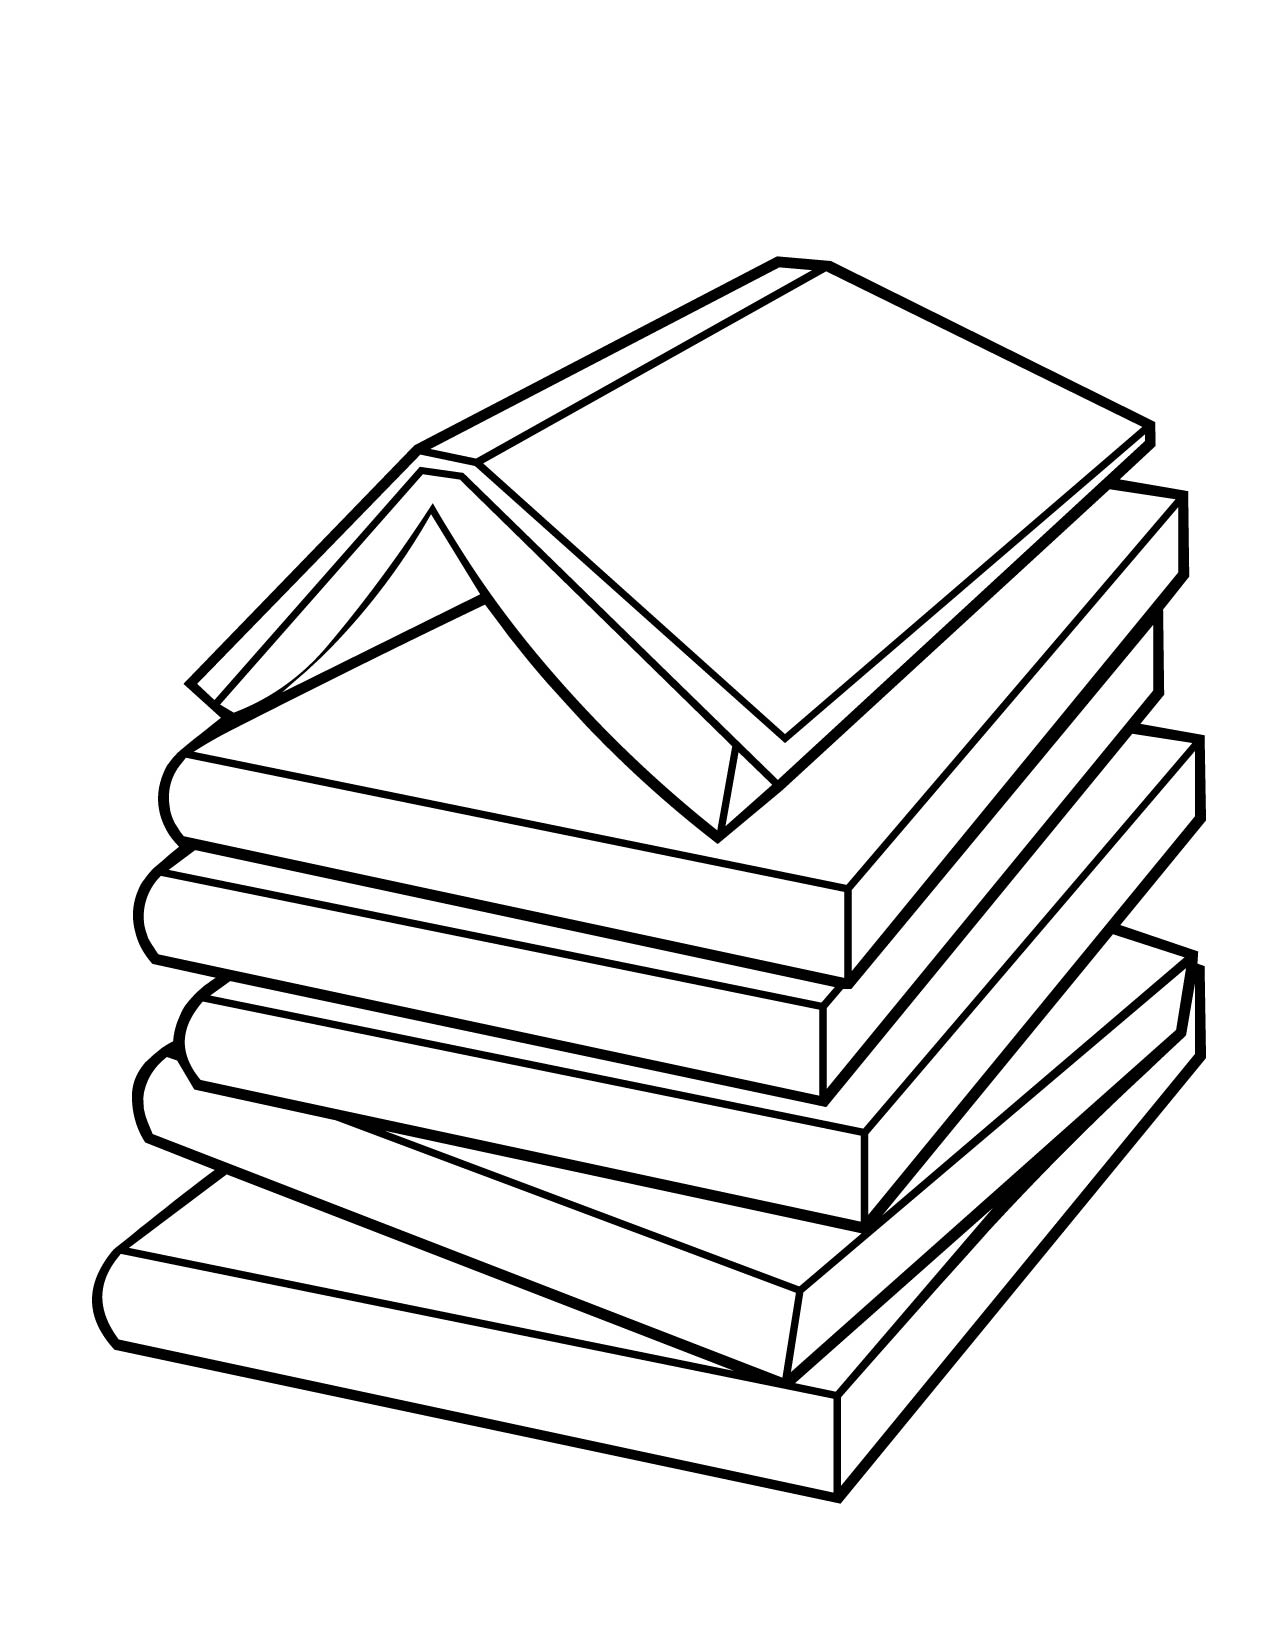 Book Coloring Pages To Download And Print For Free Coloring Pages Booklet